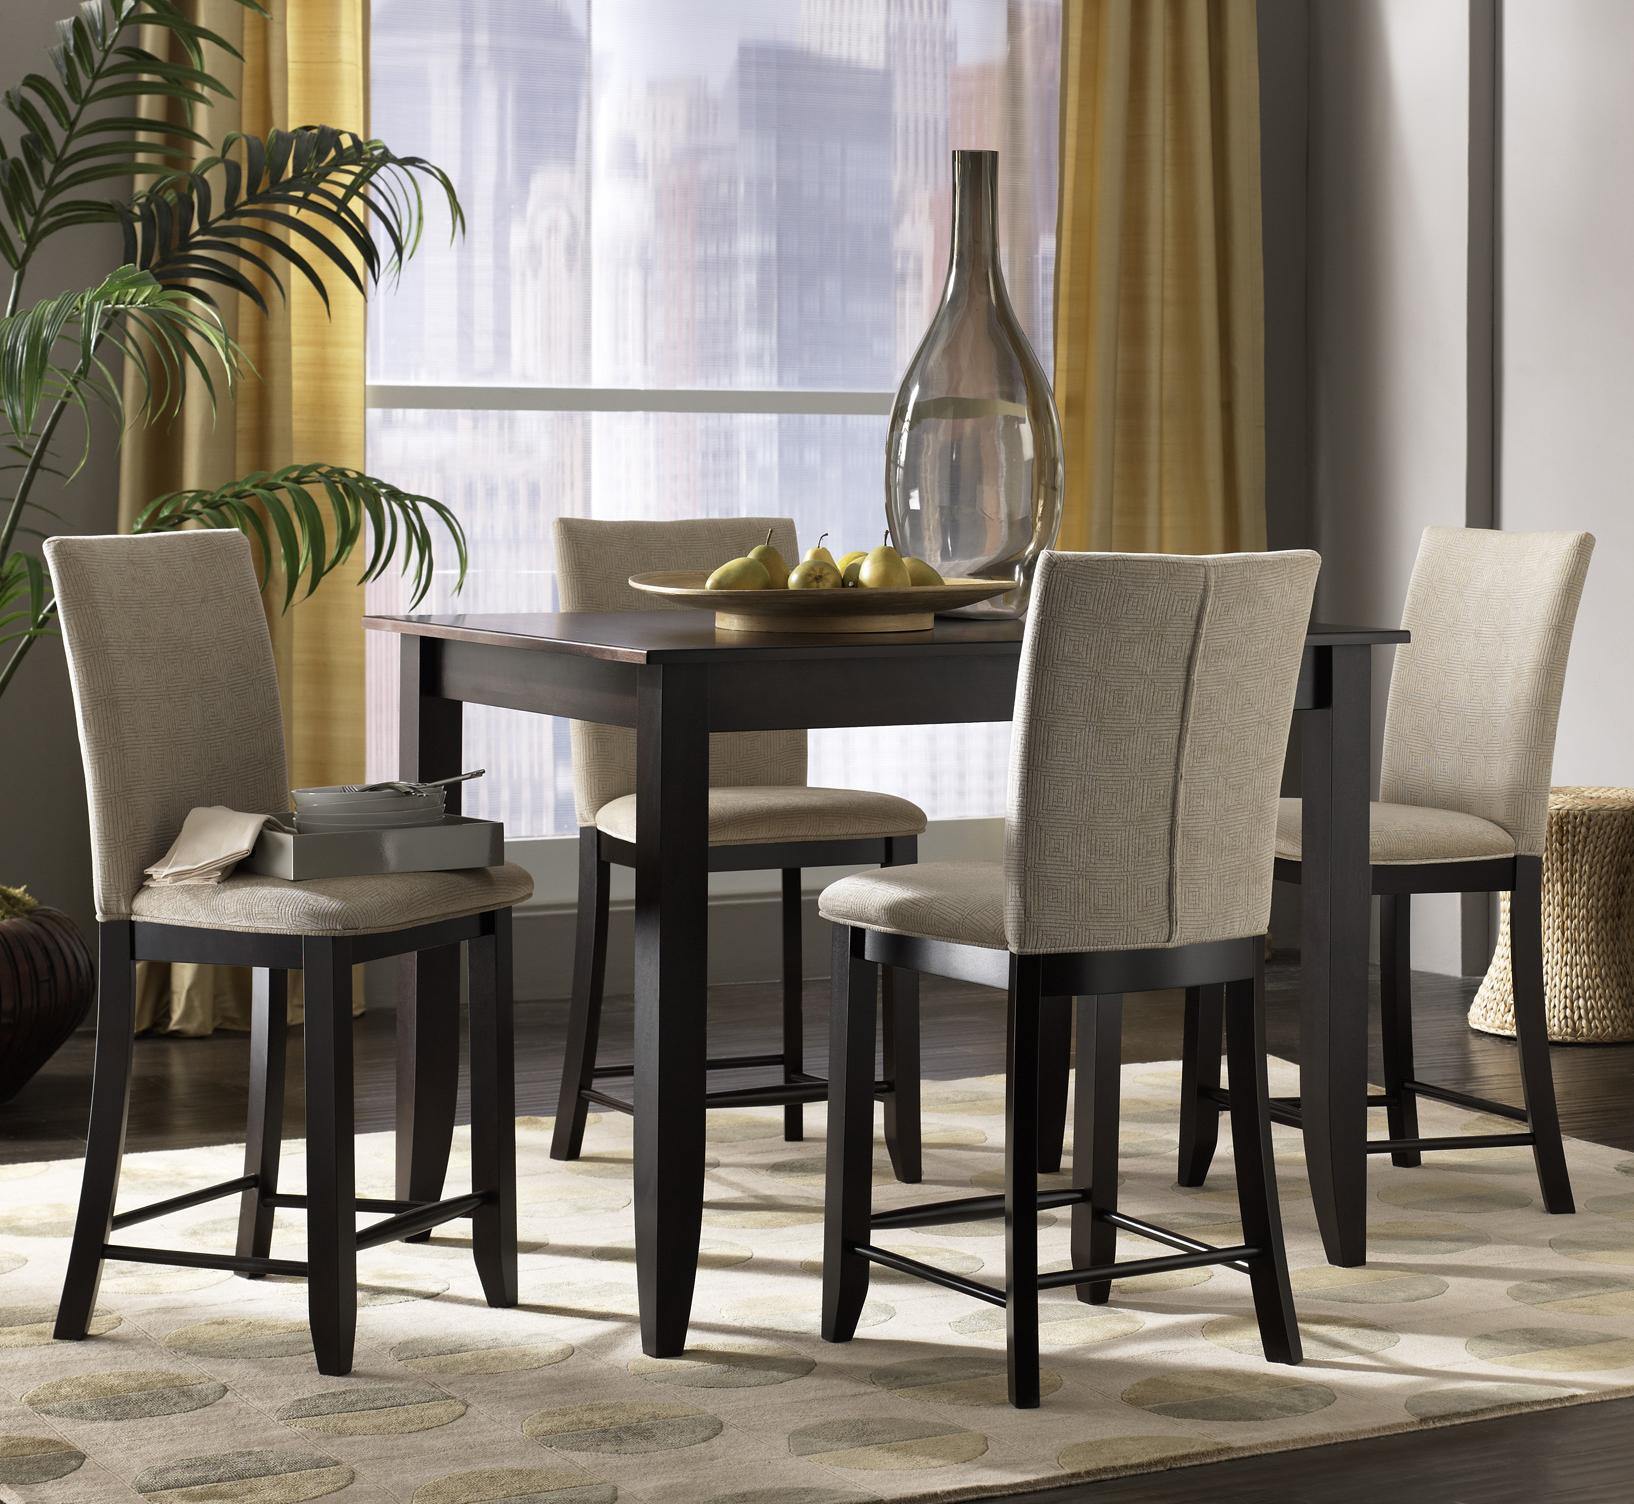 Canadel custom dining high dining customizable 5 piece for High table and chairs dining set